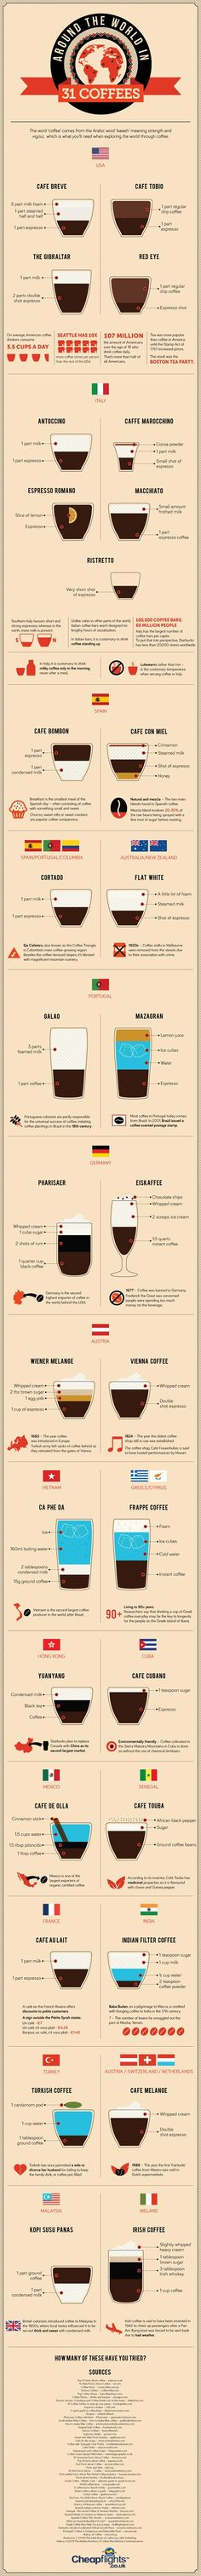 Around the World in 31 Coffee Specialities. For the true coffee lover and caffeine junky.